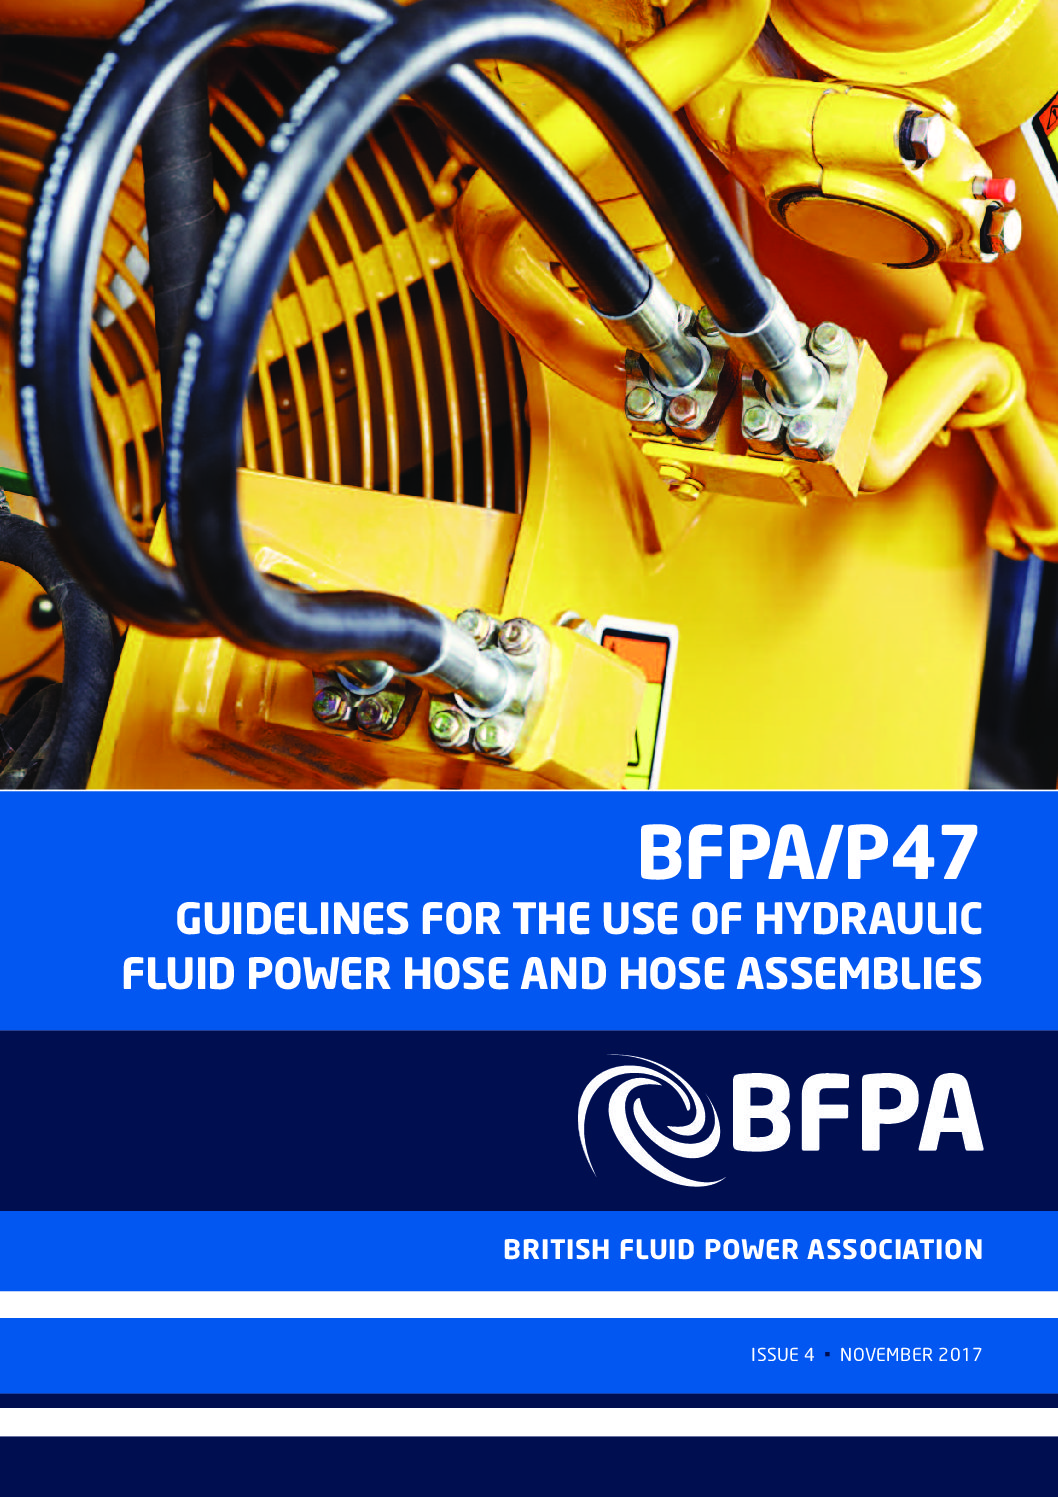 Guidelines for the use of hydraulic fluid power hose and hose assemblies